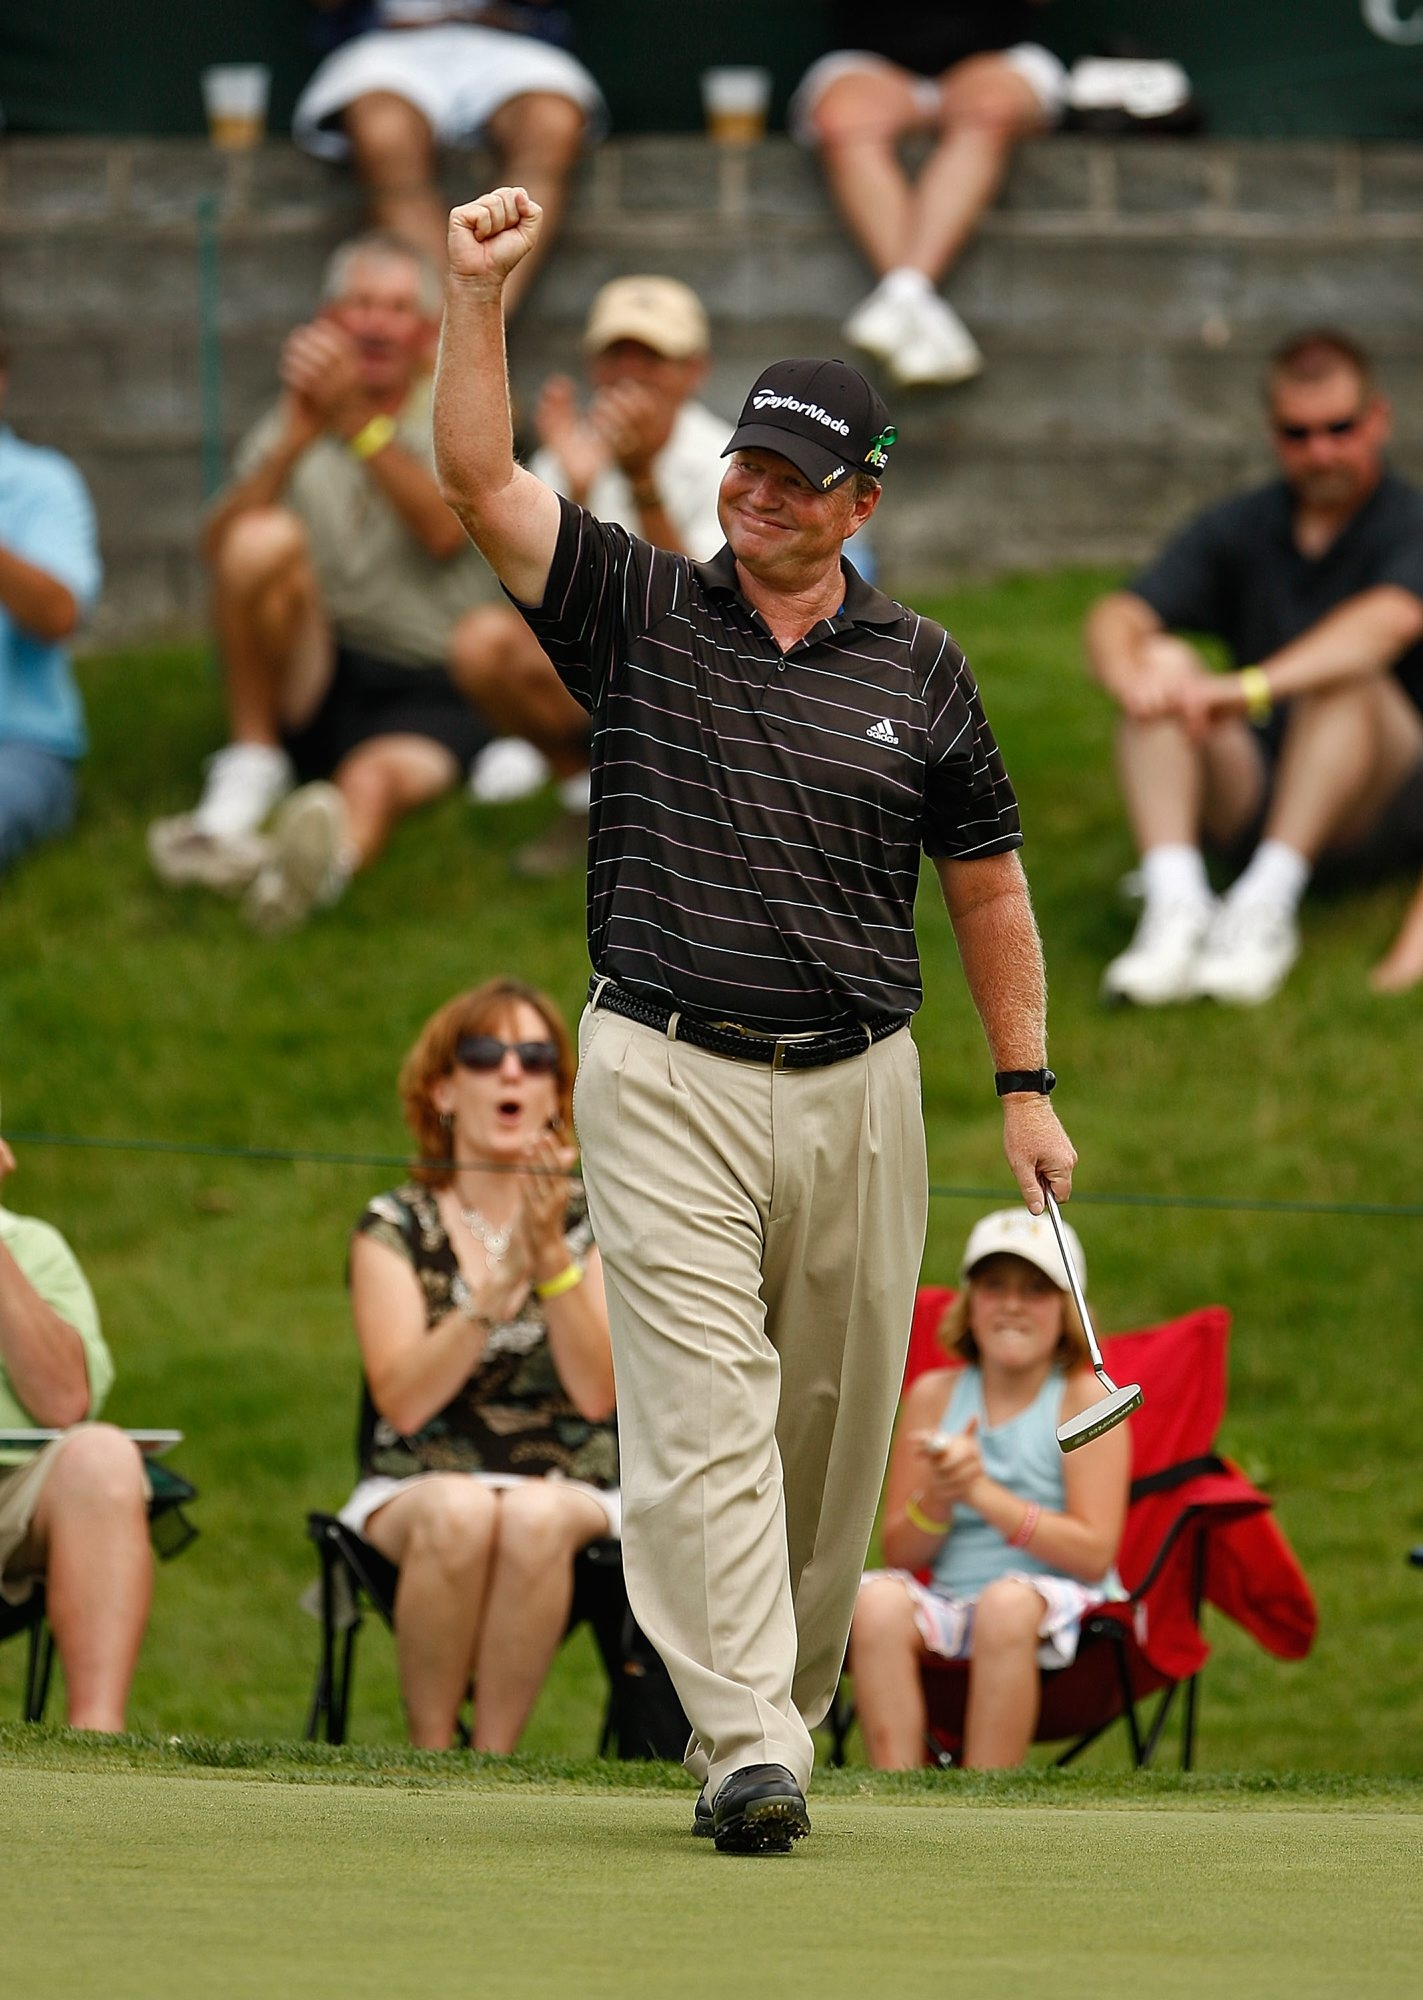 Lonnie Nielsen, 60, is planning to attend qualifying school this fall, hoping to earn a full exemption to play on the PGA Champions Tour again.